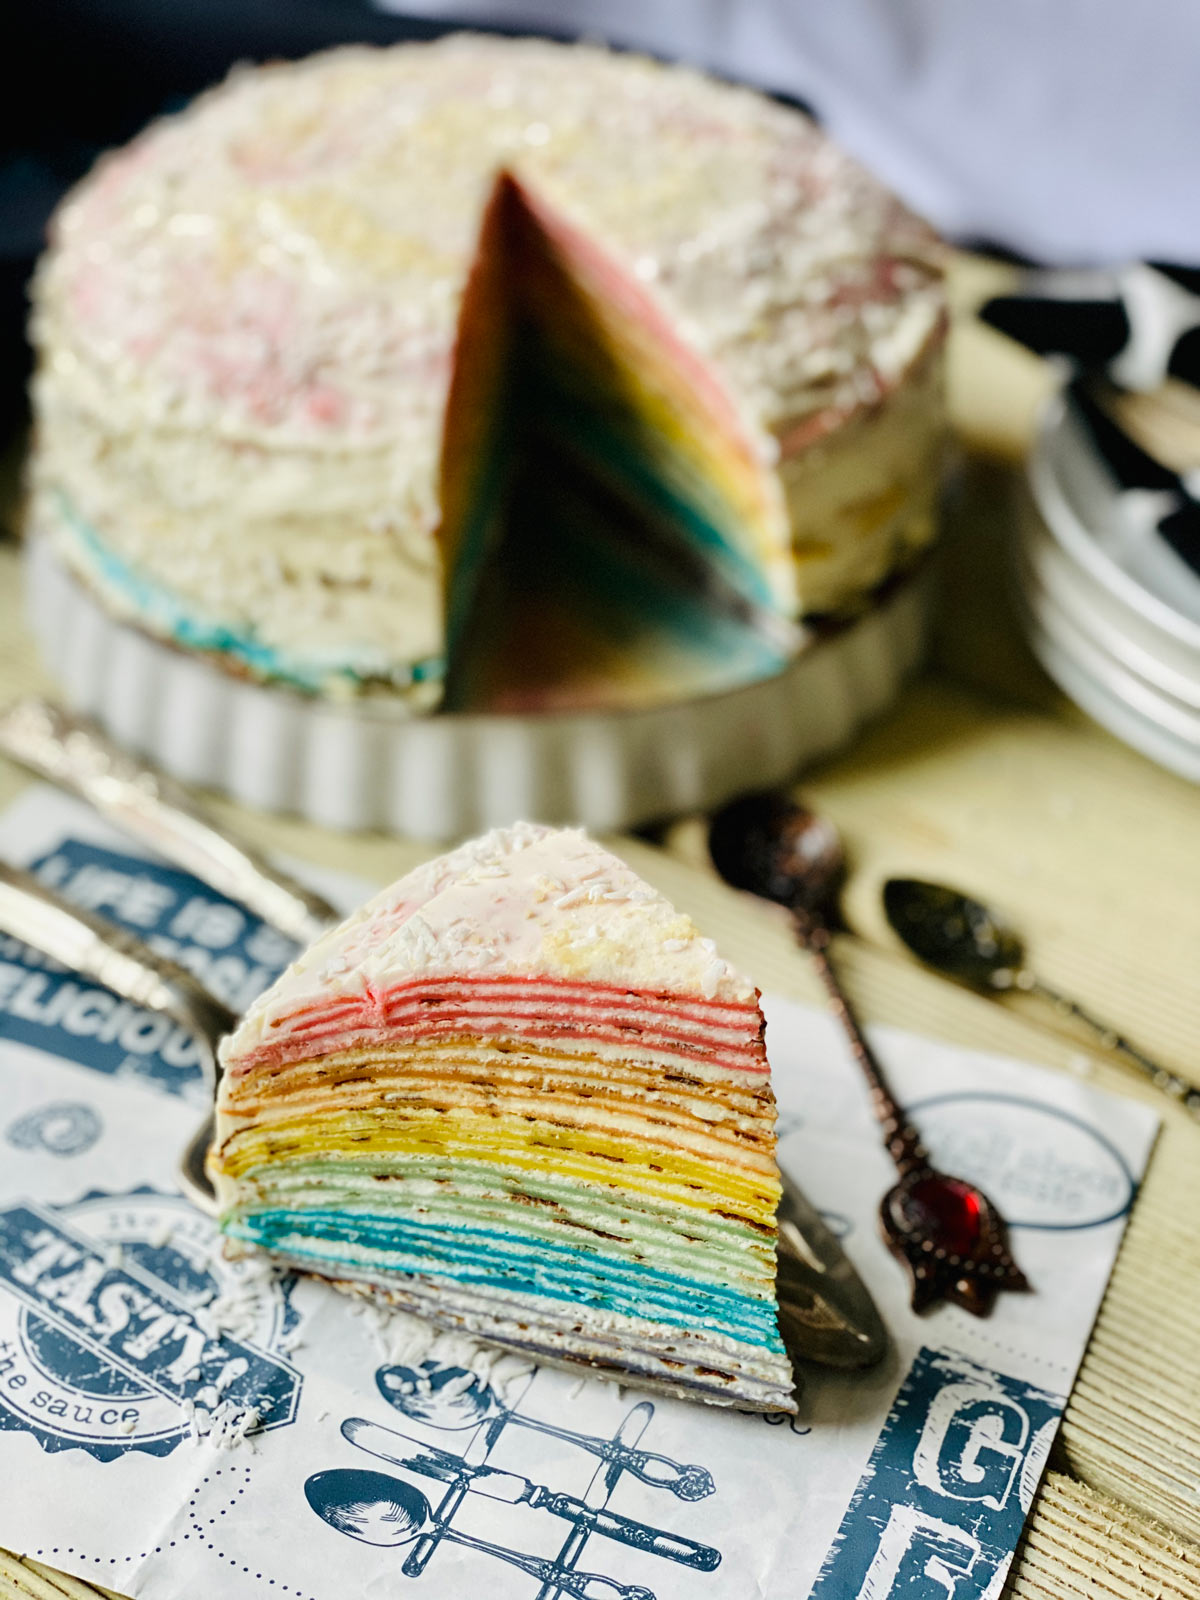 Rainbow crepe cake slice close up on patterned paper